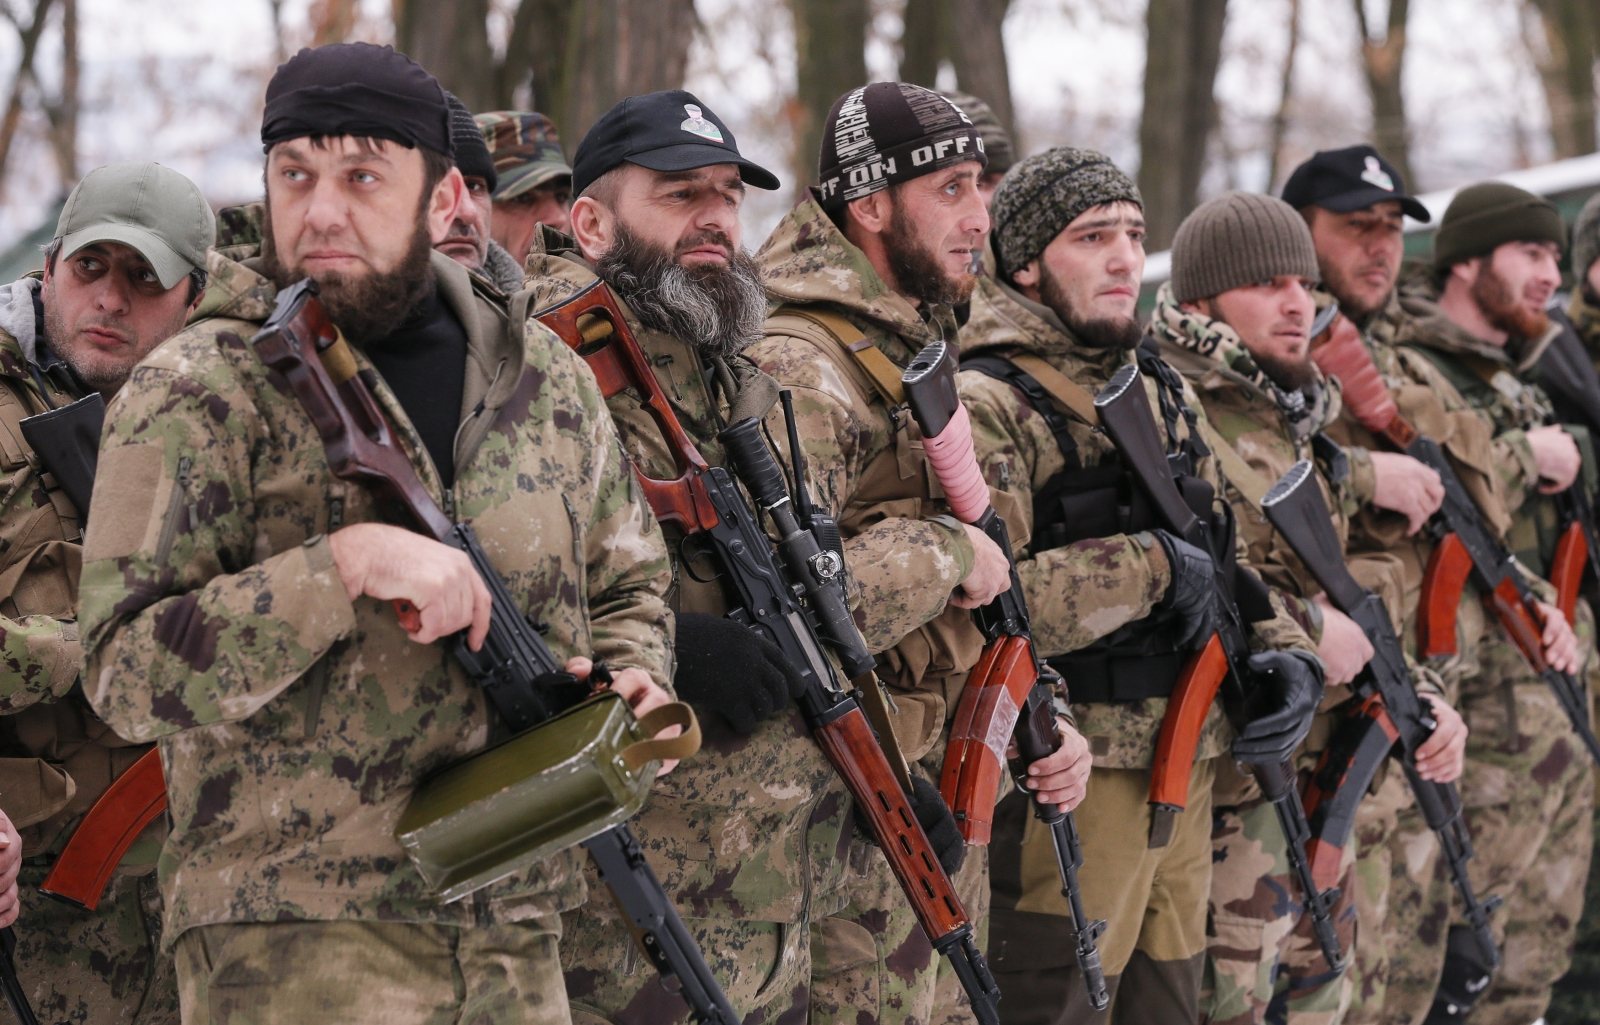 Pro-Russian separatists from the Chechen